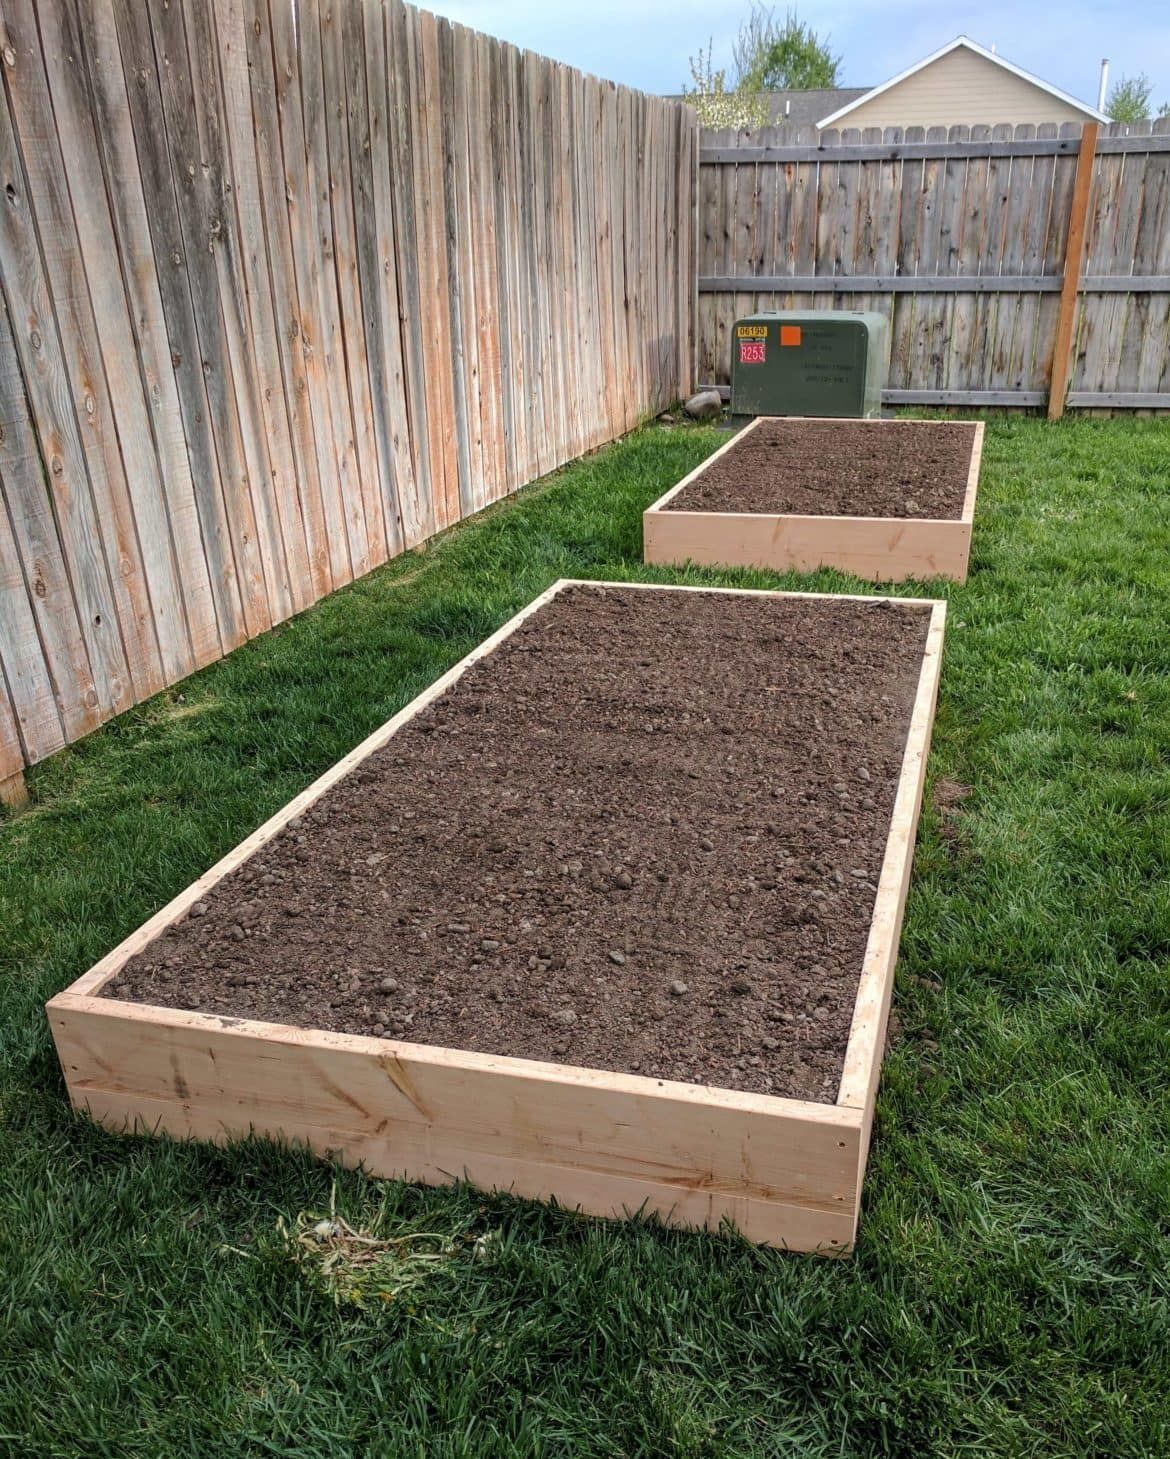 How To Build Raised Garden Beds An Easy Diy Design Building A Raised Garden Building Raised Garden Beds Diy Raised Garden Backyard garden raised bed plans